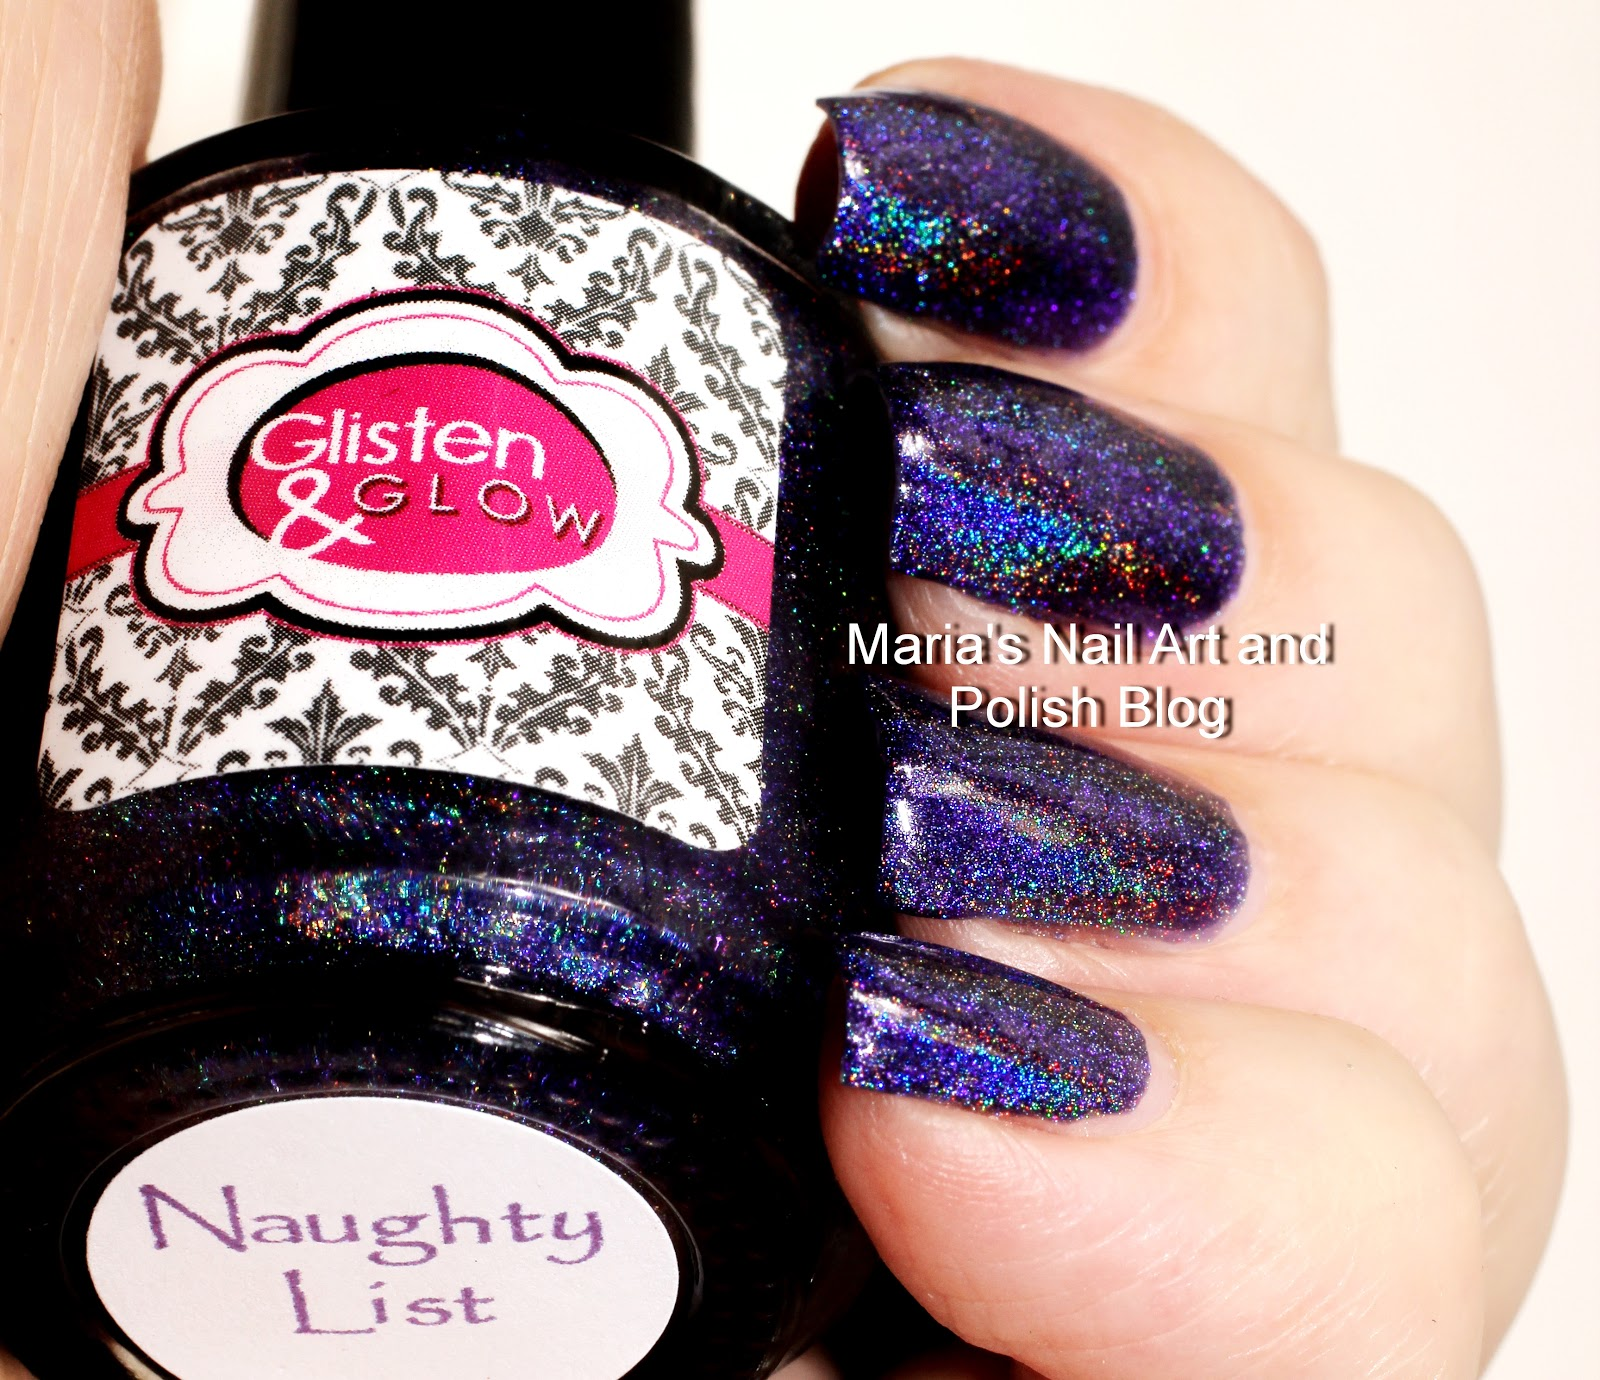 Marias Nail Art And Polish Blog Flushed With Stripes And: Marias Nail Art And Polish Blog: Glisten & Glow Naughty